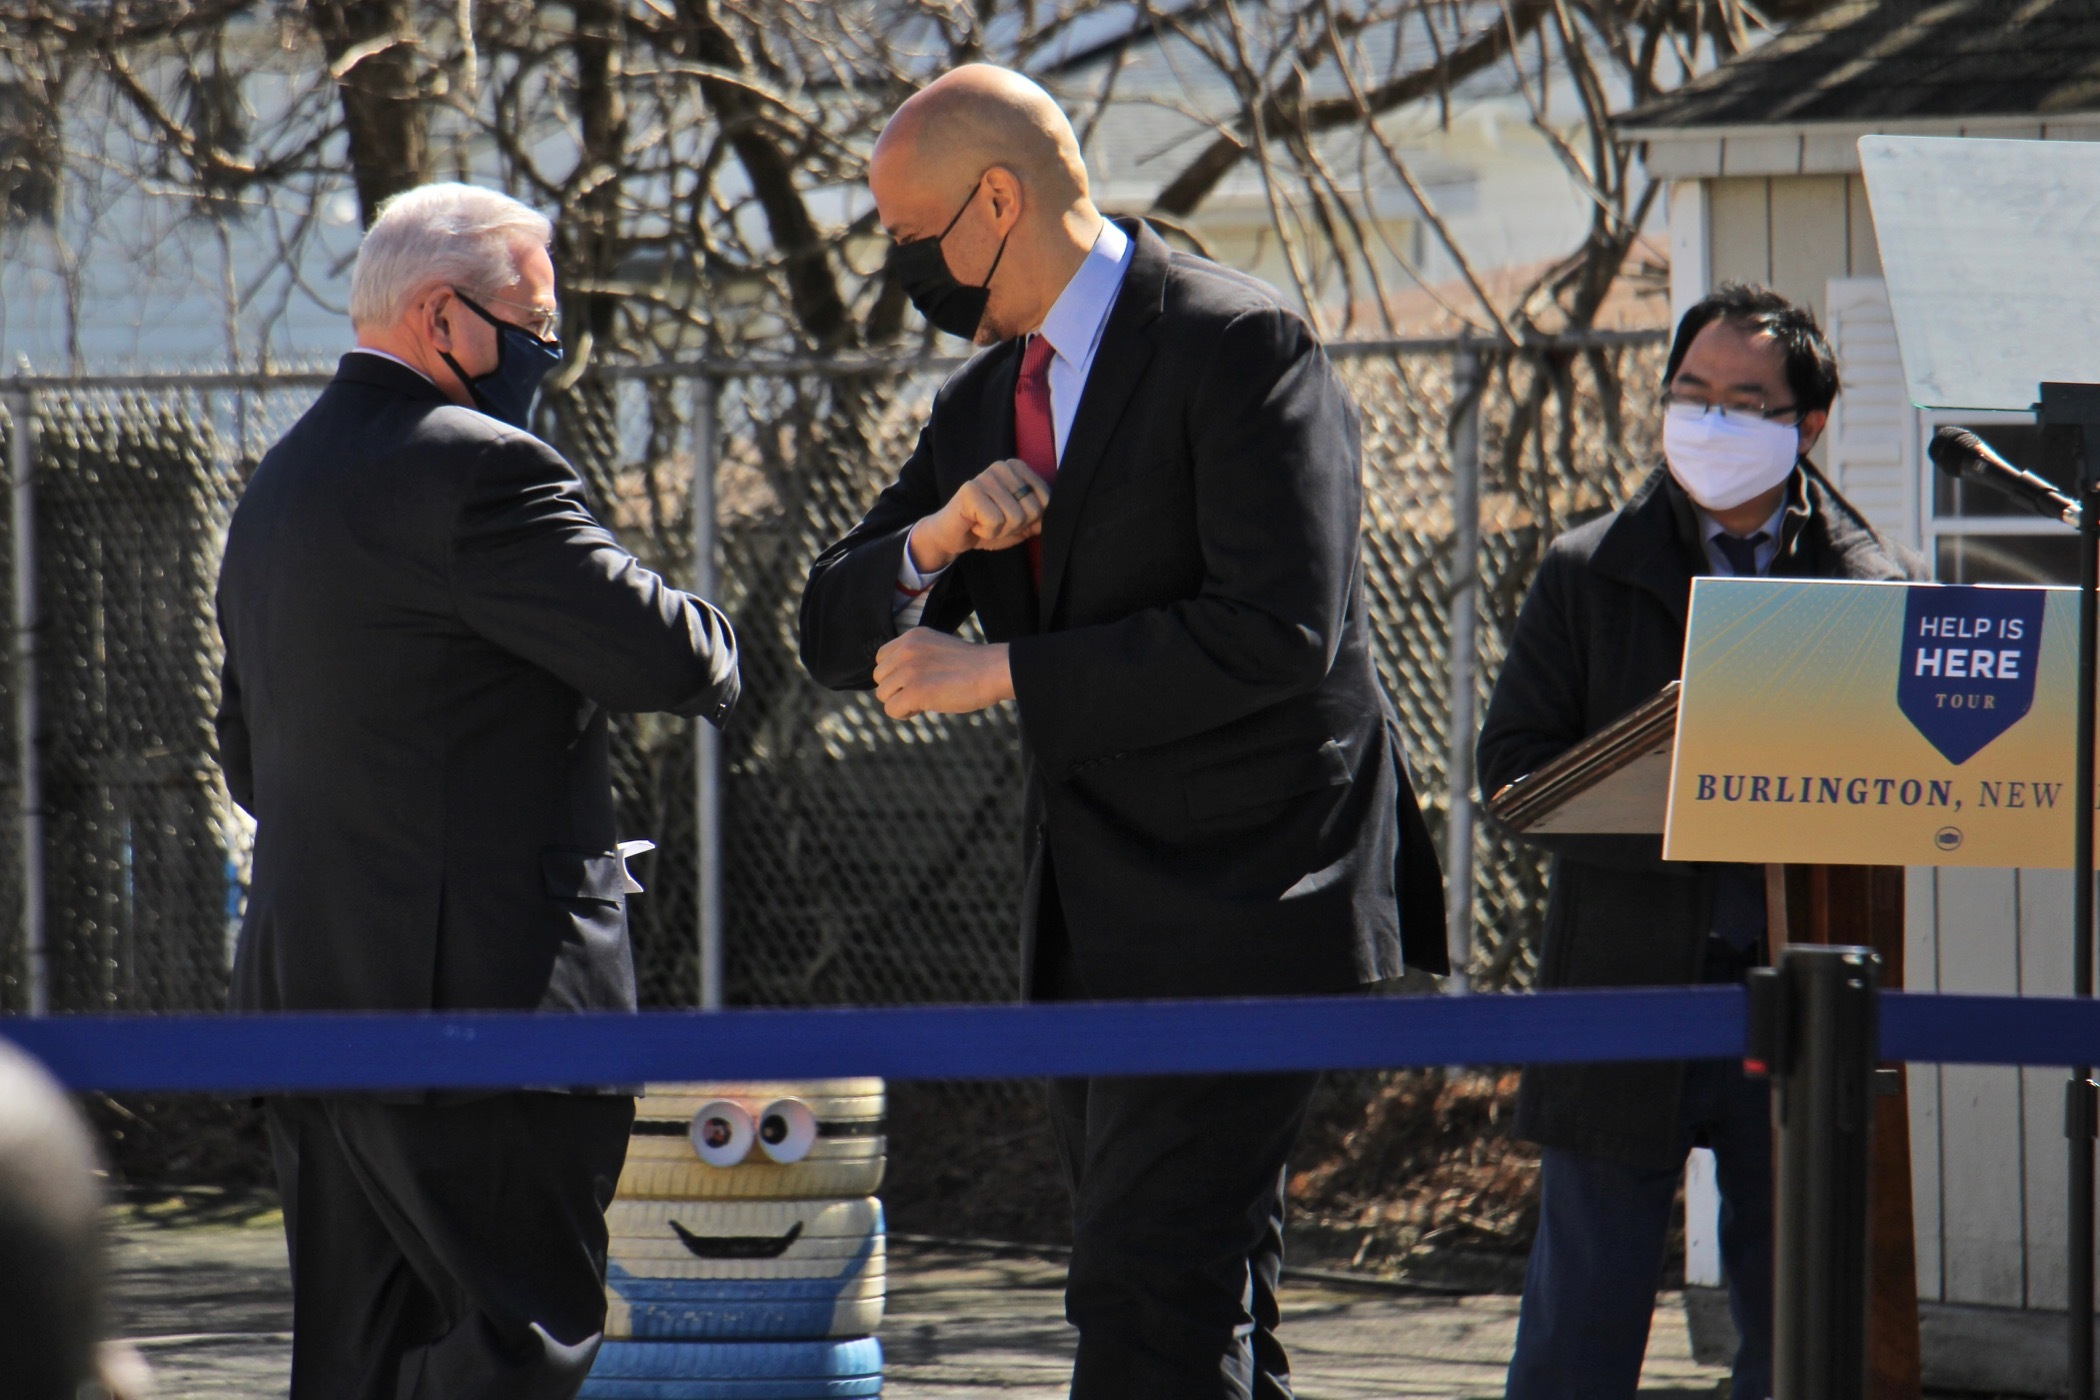 New Jersey U.S. Sens. Robert Menendez (left) and Cory Booker bump elbows while U.S. Rep. Andy Kim looks on